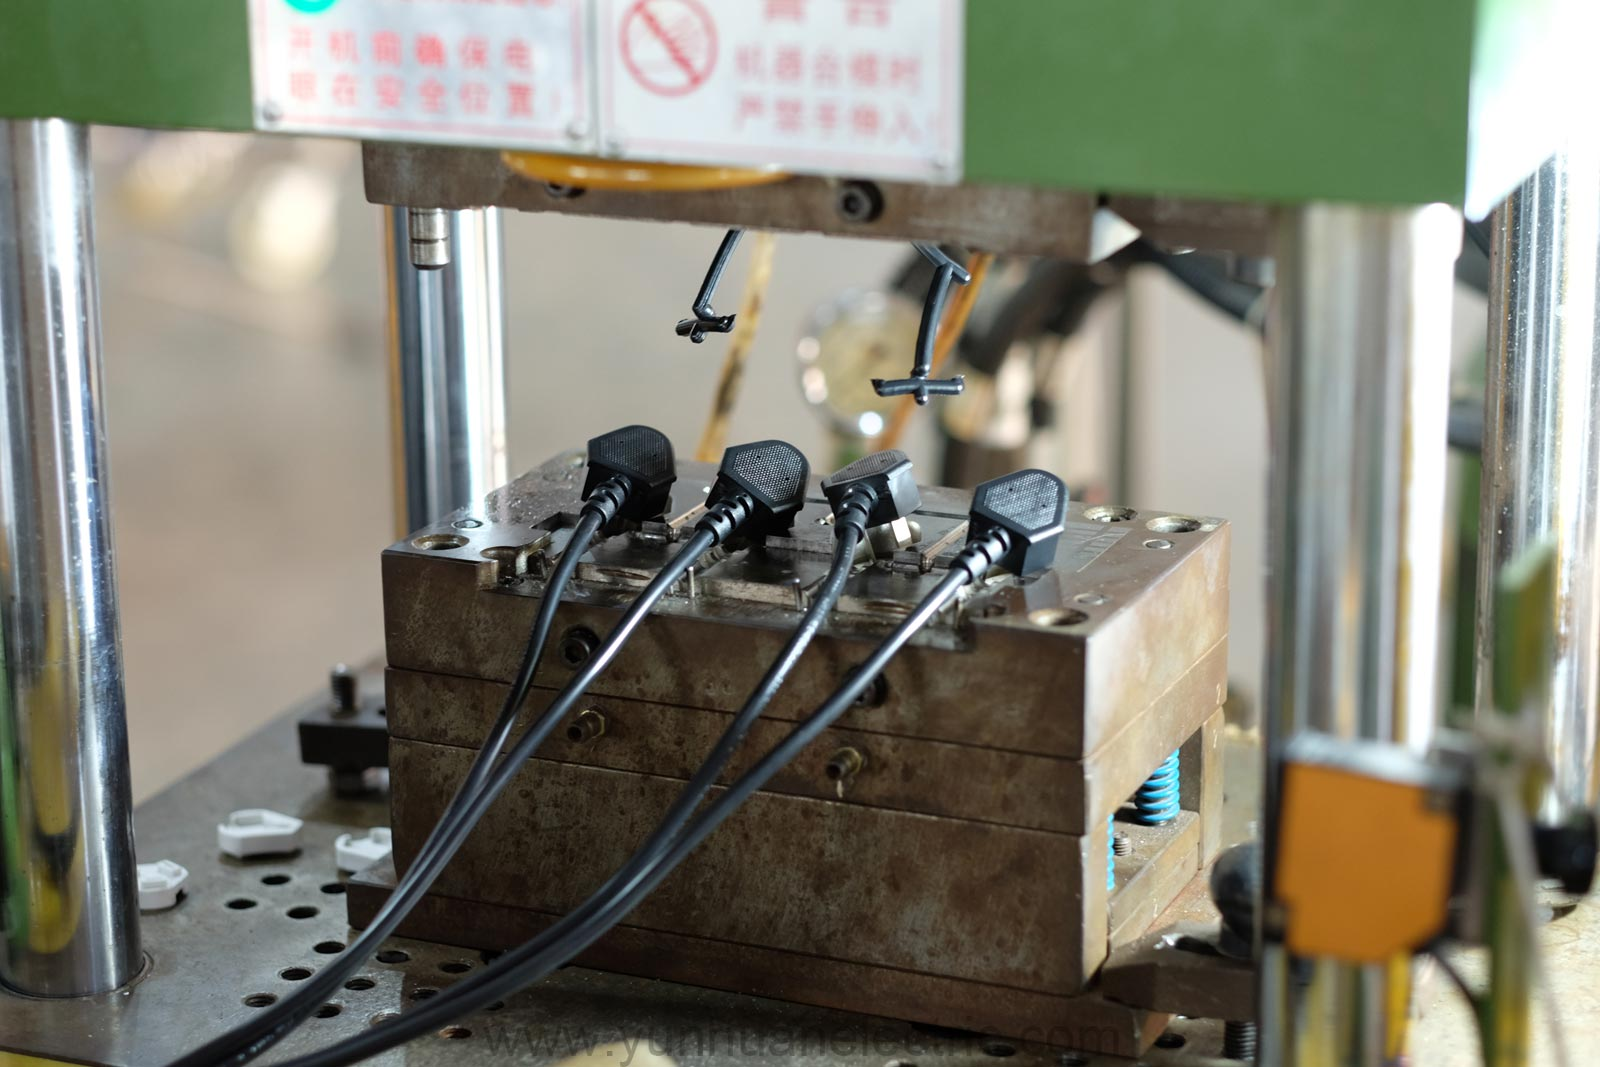 Flexible Wire Molding : China prong right angle power cord